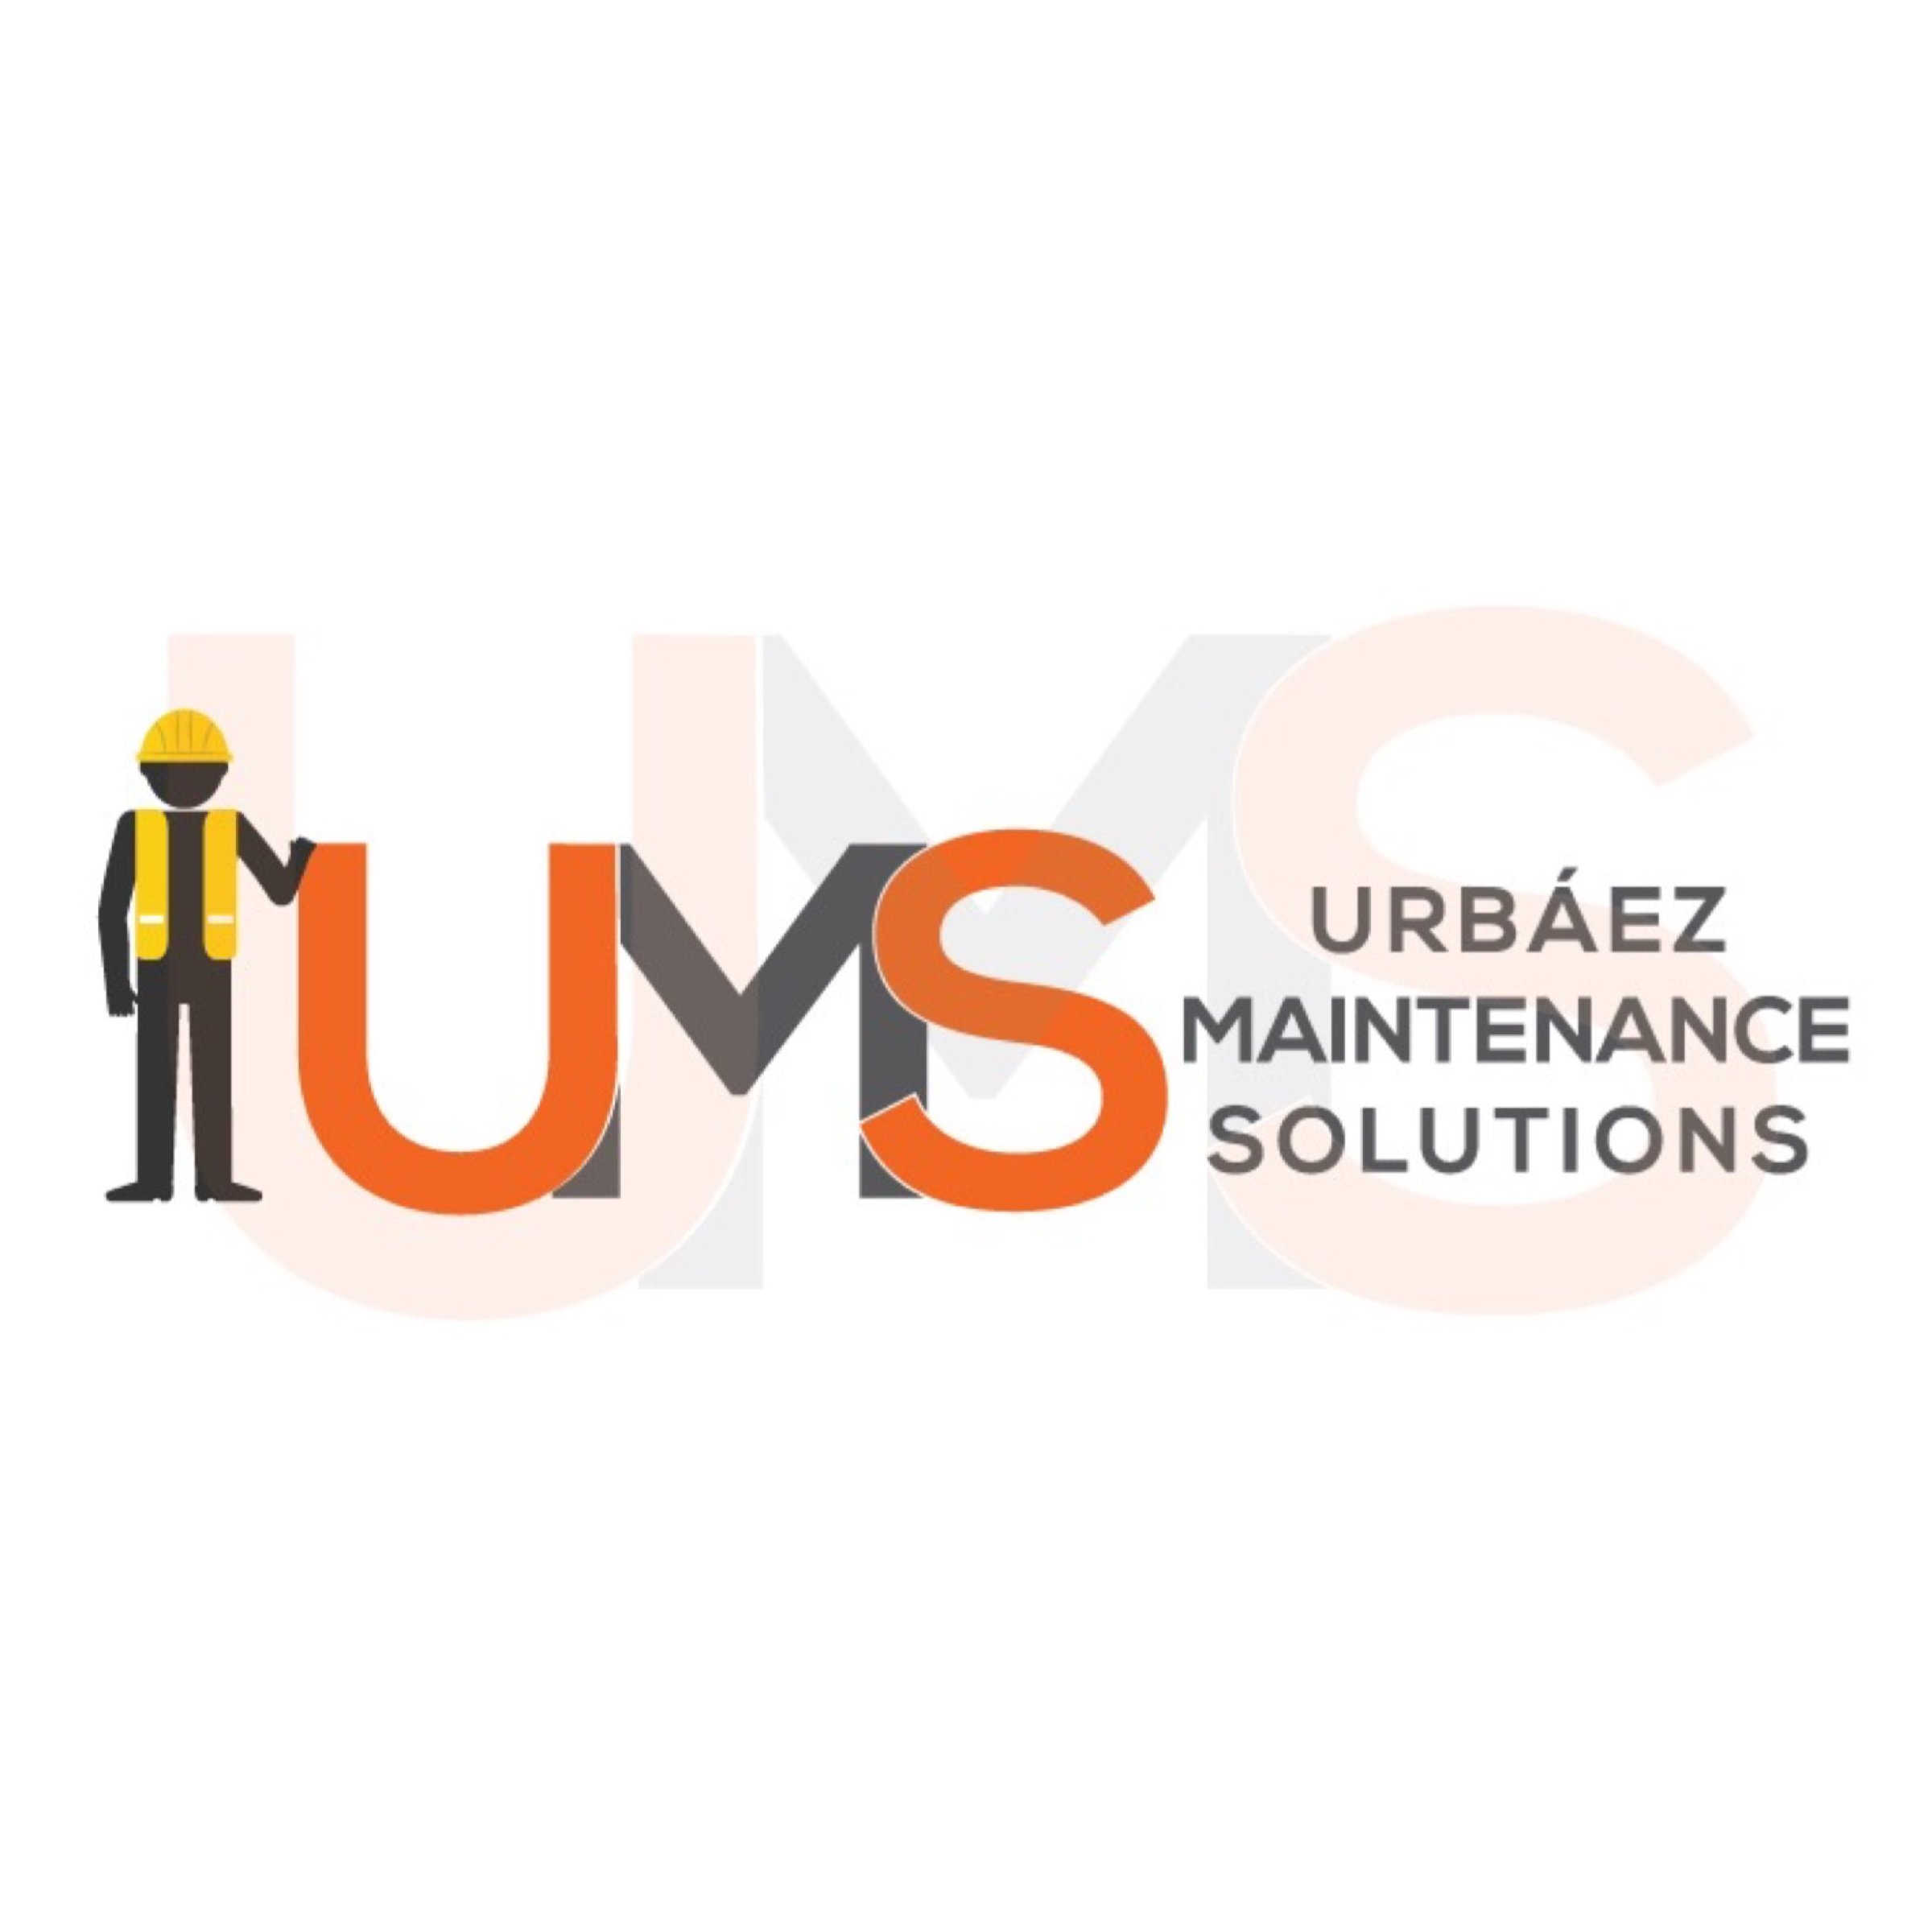 logotipo da empresa Urbaez Maintenance Solutions